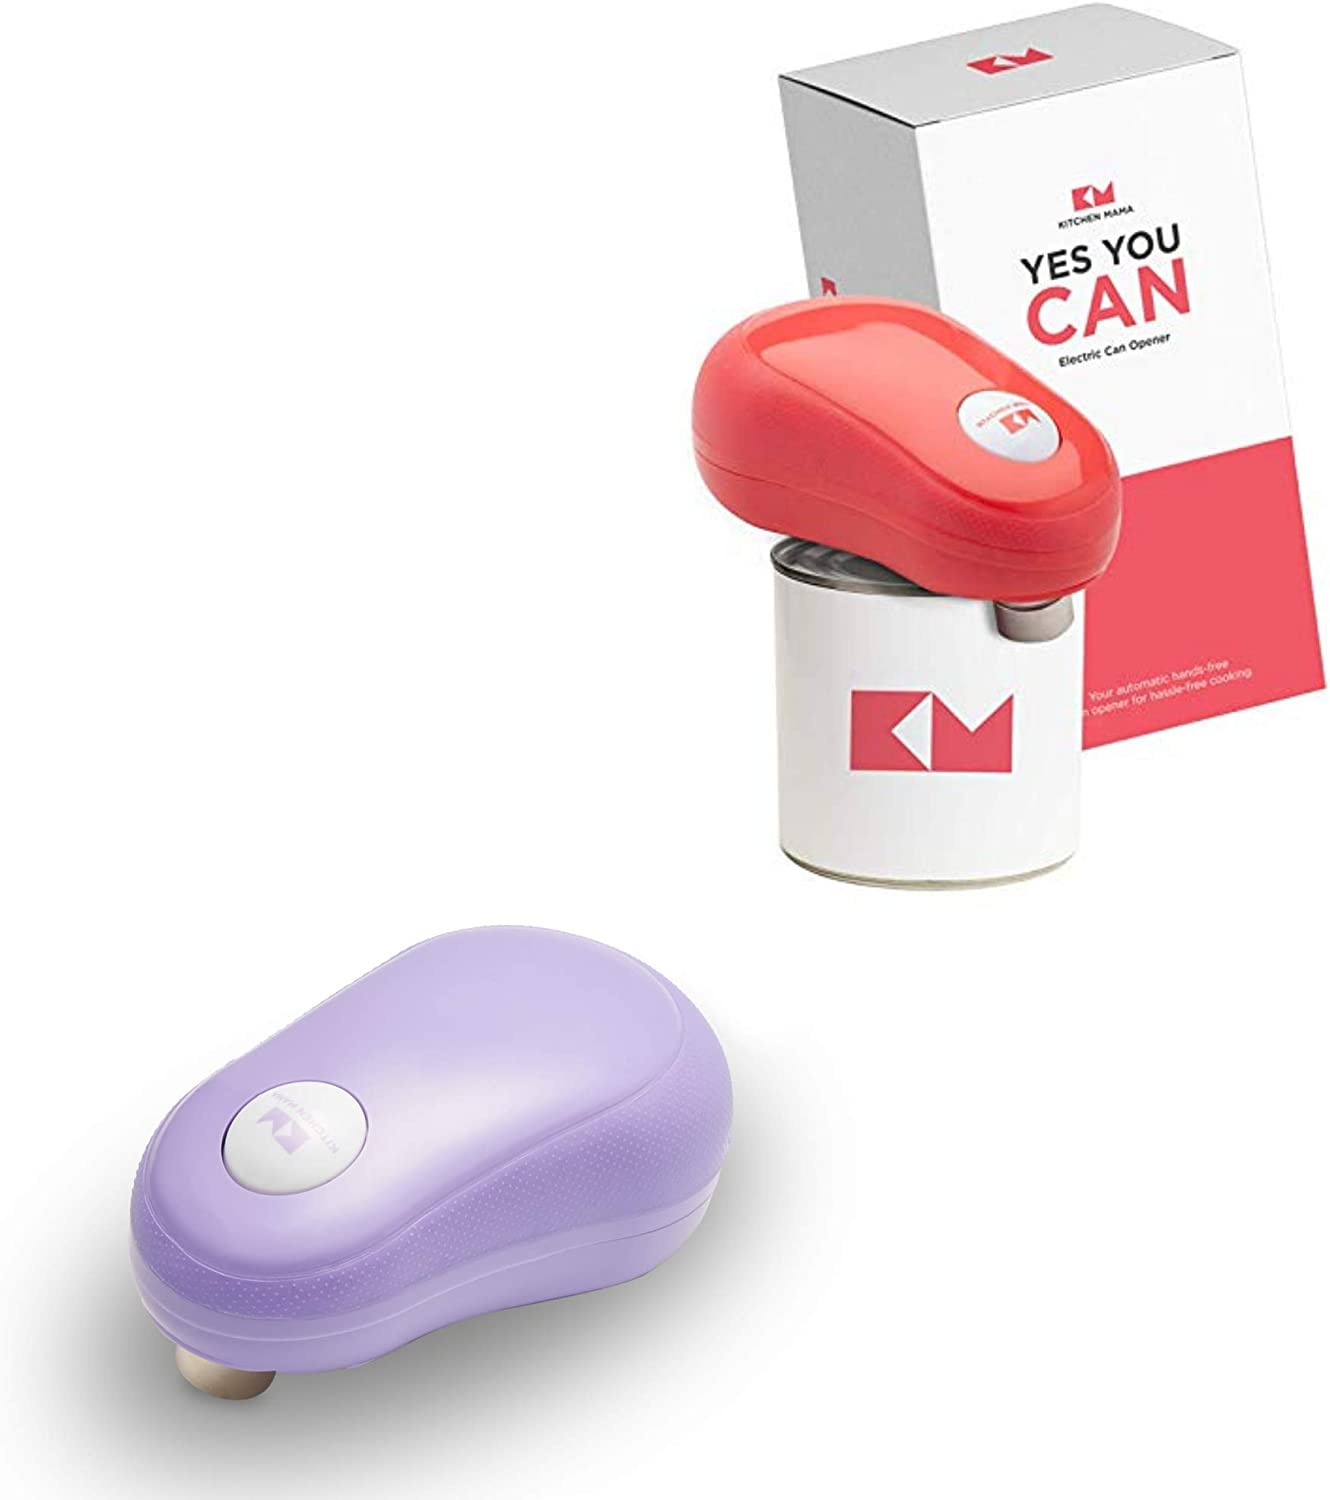 Kitchen Mama One Touch Can Opener: A Open 送料無料激安祭 Push Cans OUTLET SALE with Simple